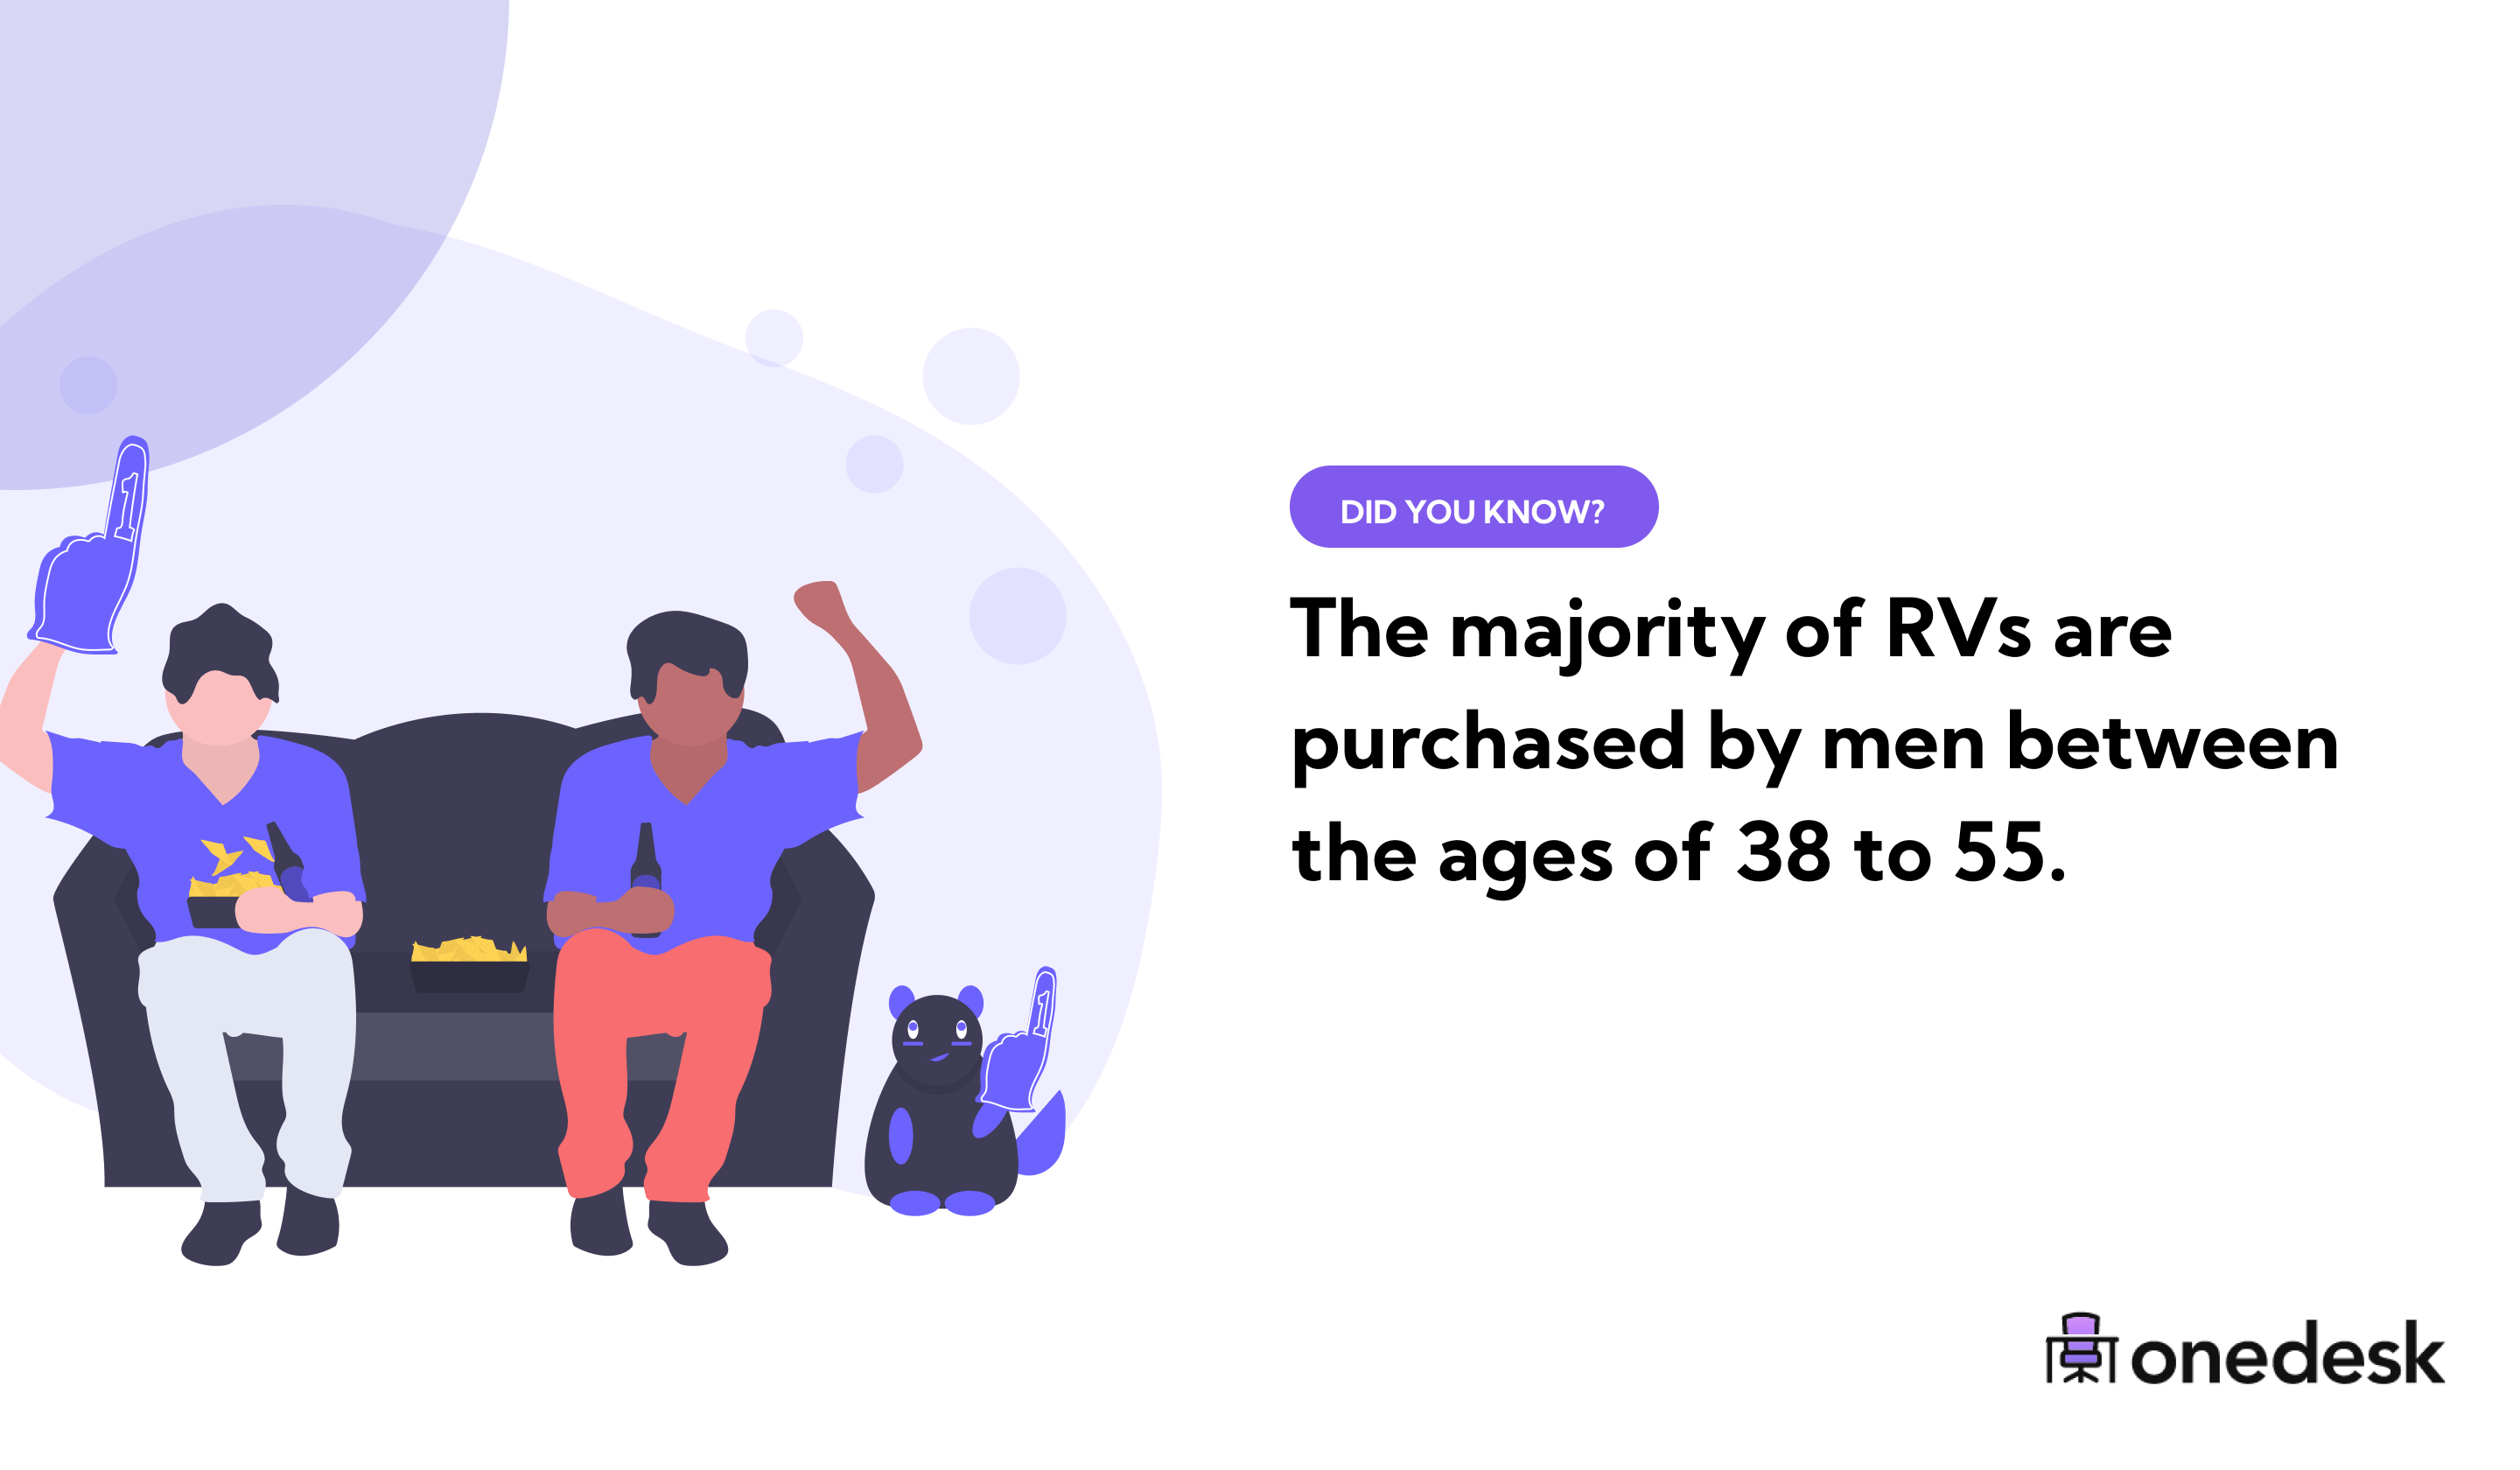 most RVs are purchased by men